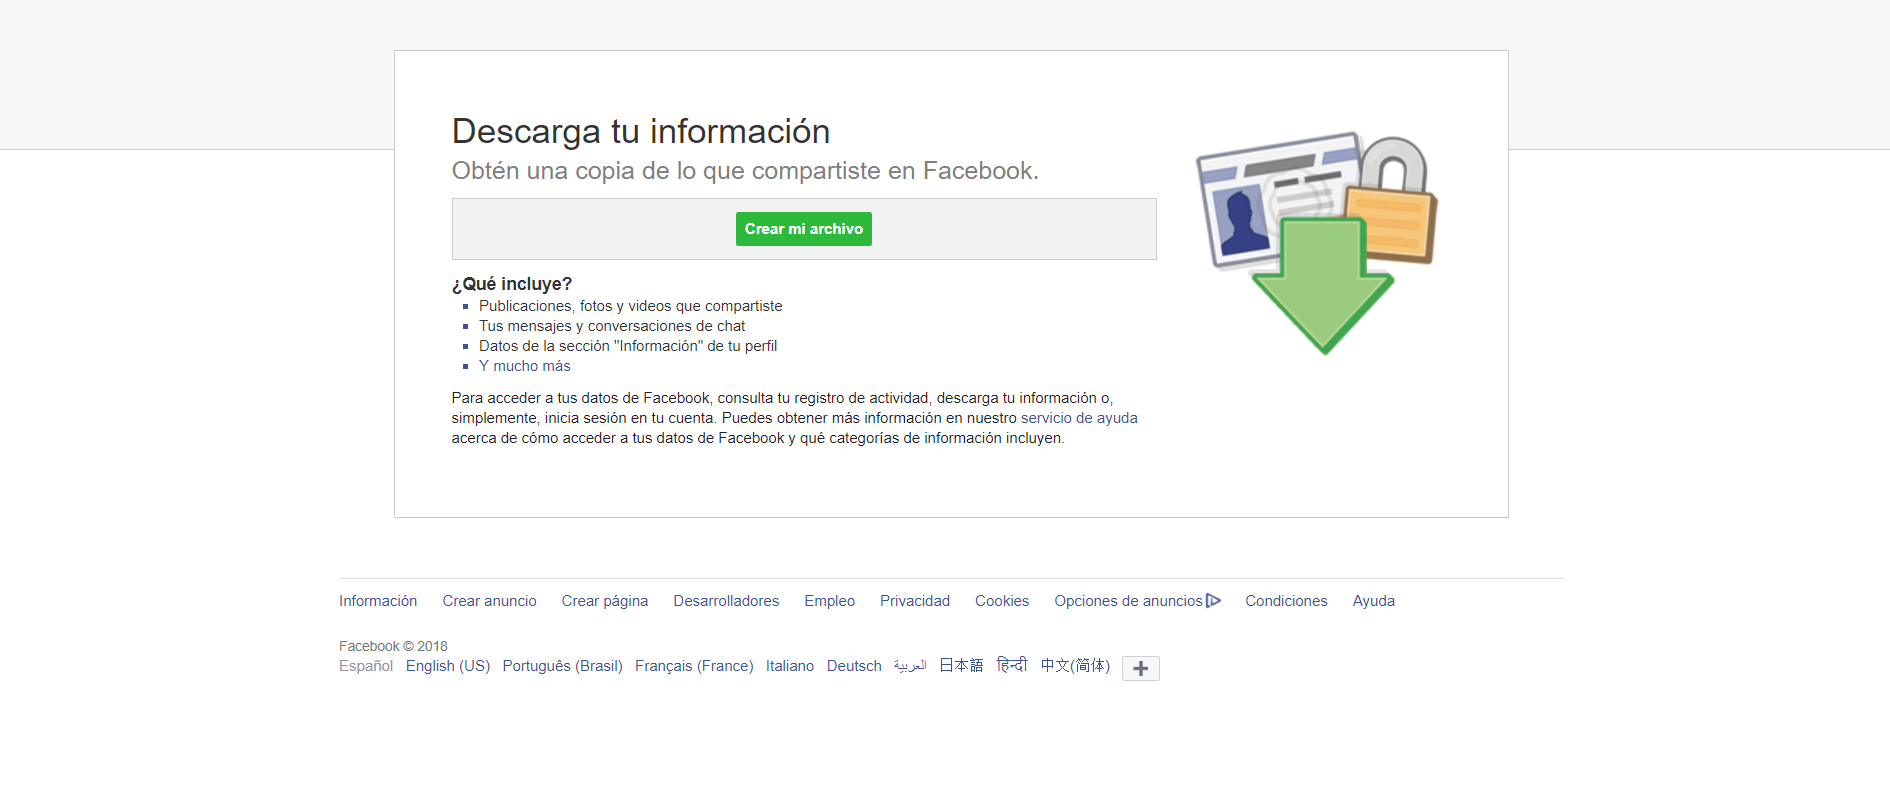 How to completely eliminate your Facebook profile